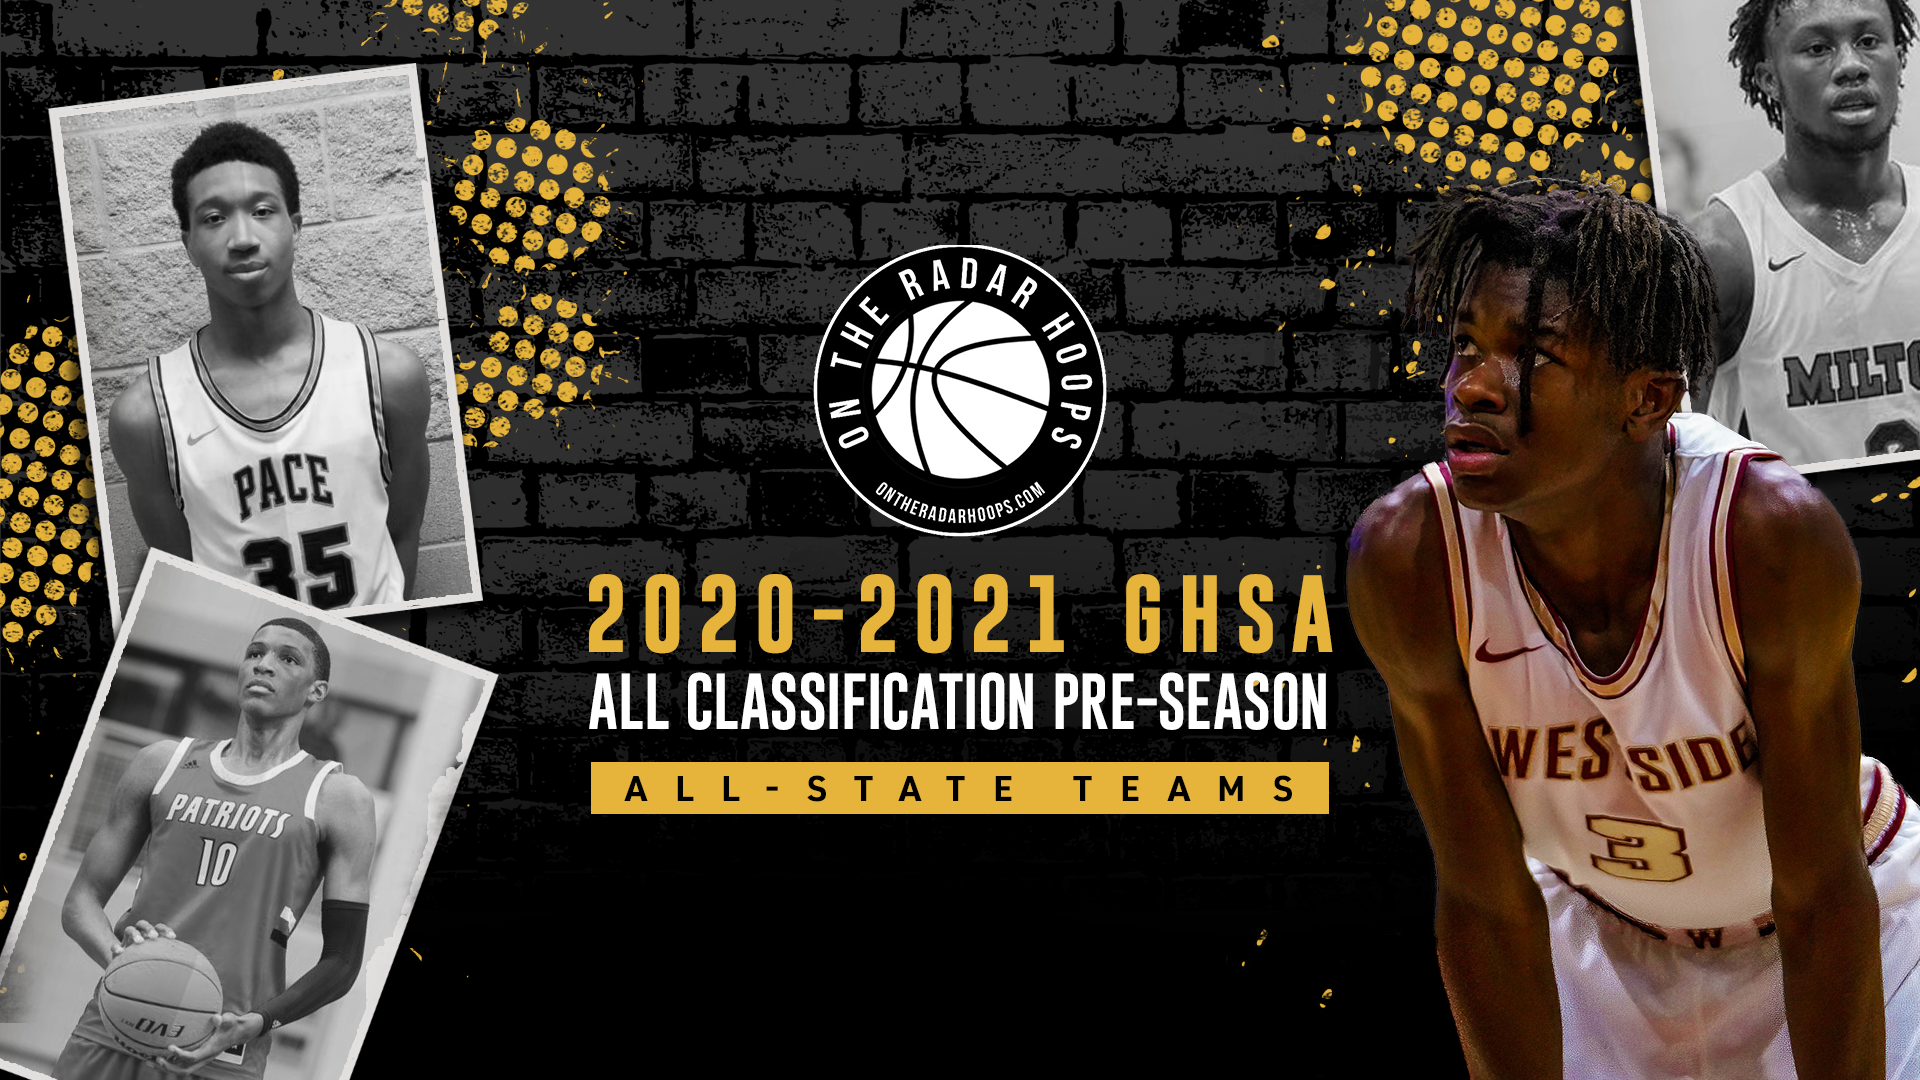 2020-21 GHSA All Classification Pre-Season All-State Teams